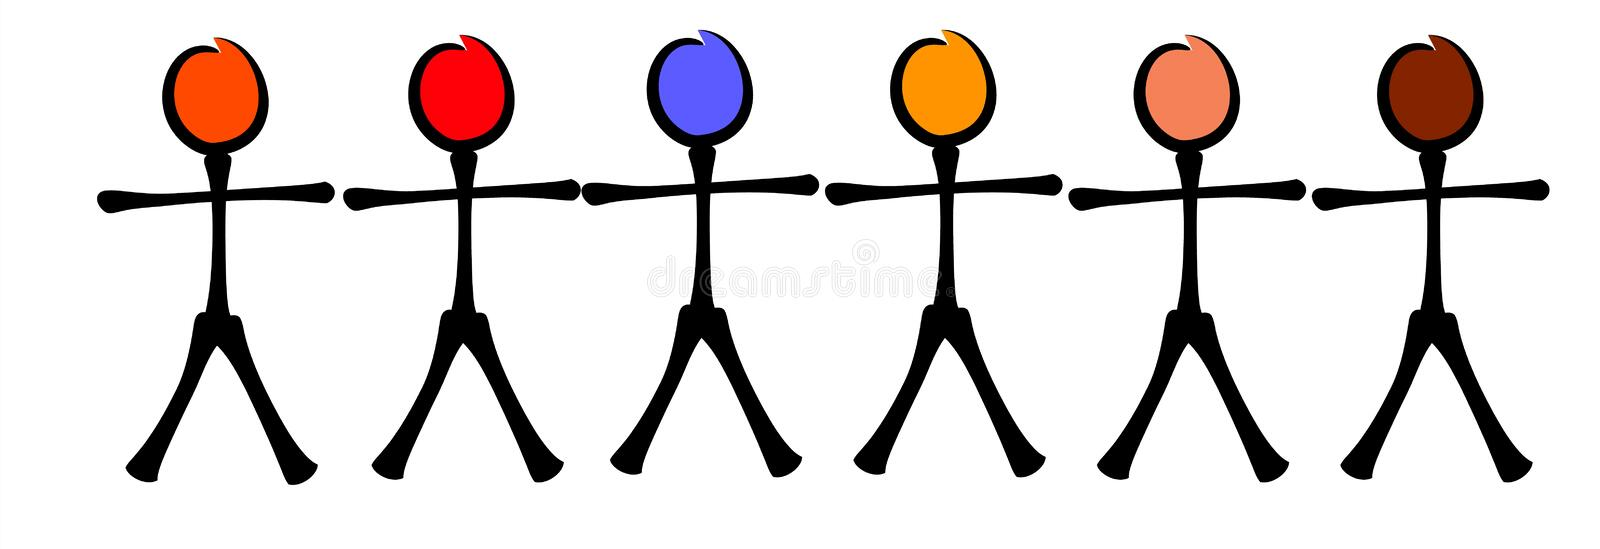 Stick Figures Racial Equality vector illustration